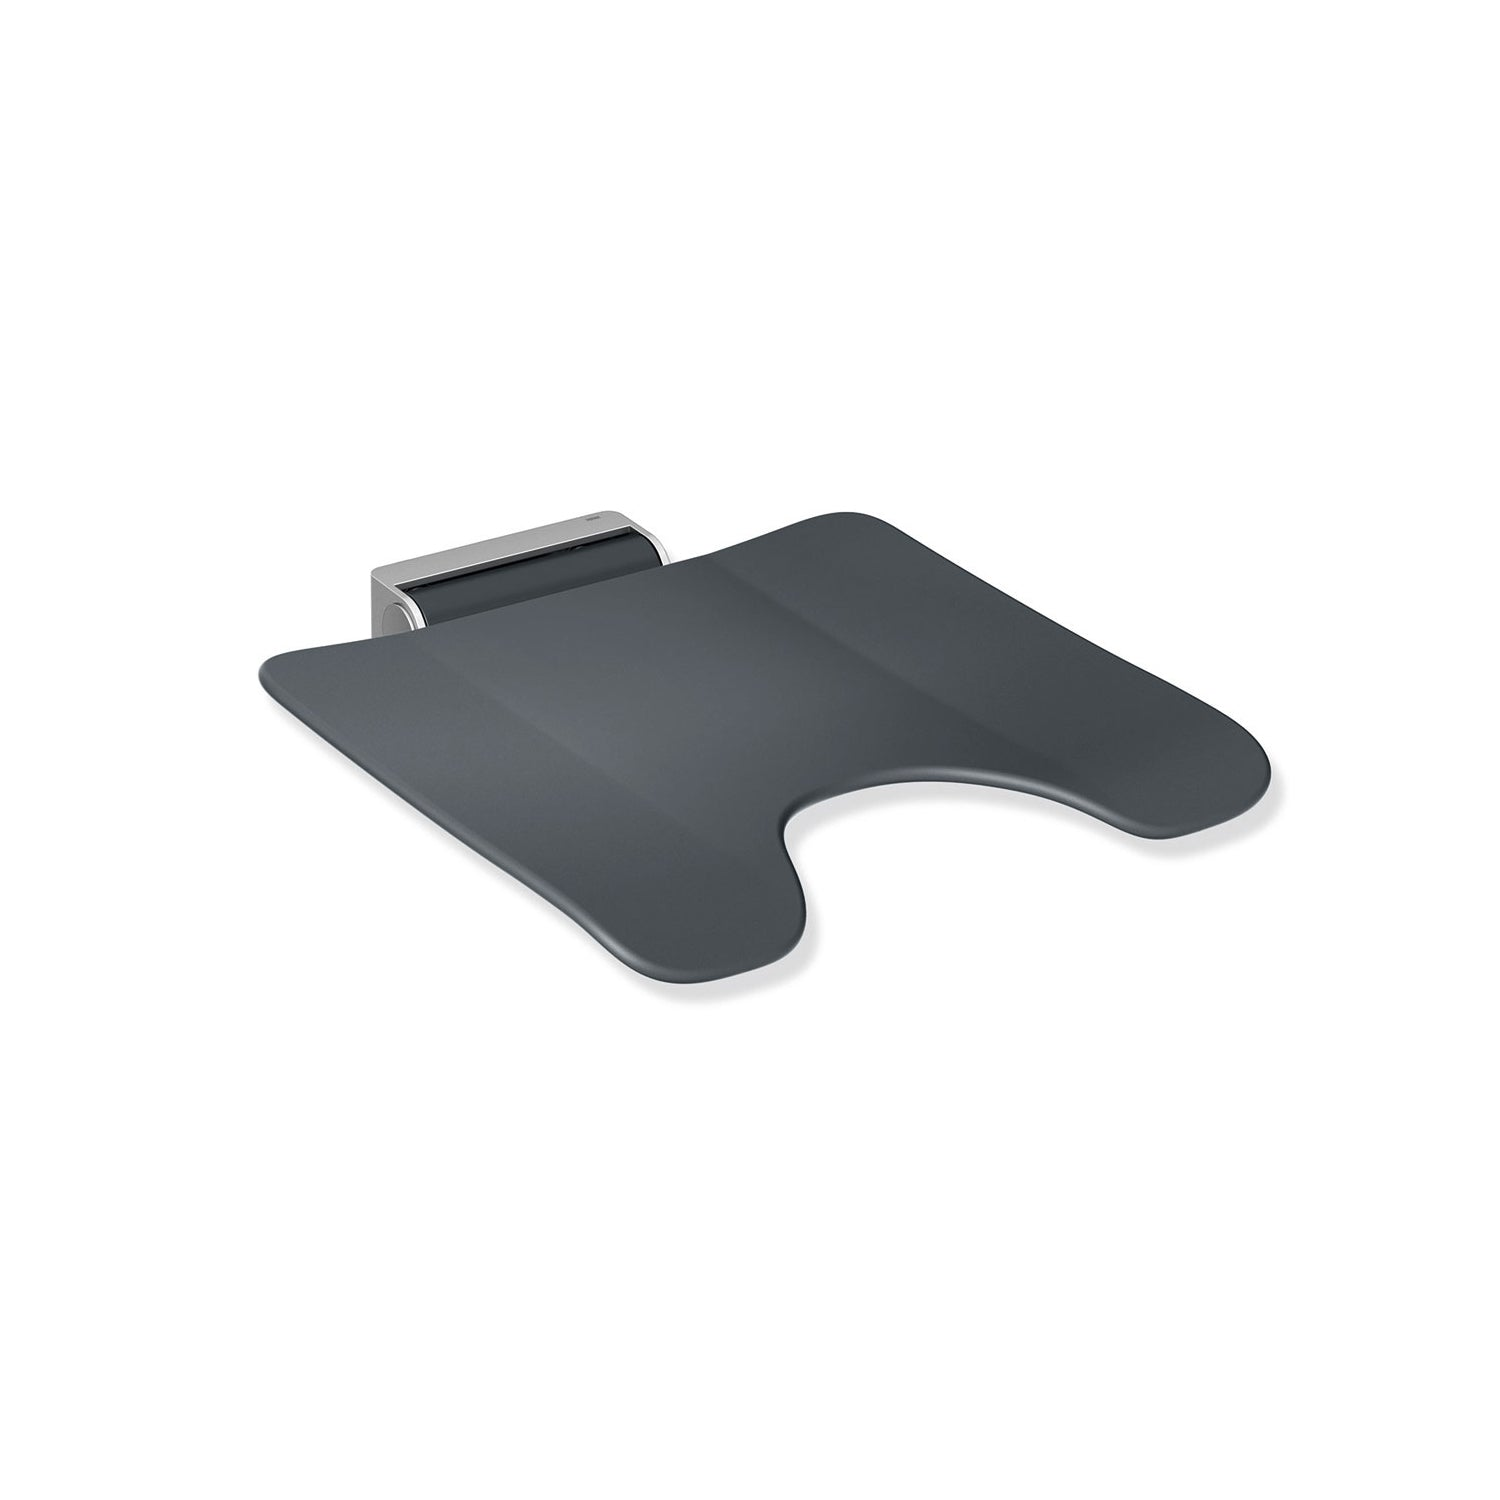 Freestyle Fixed Shower Seat with a cut-out in an anthracite grey seat and satin steel finish bracket on a white background